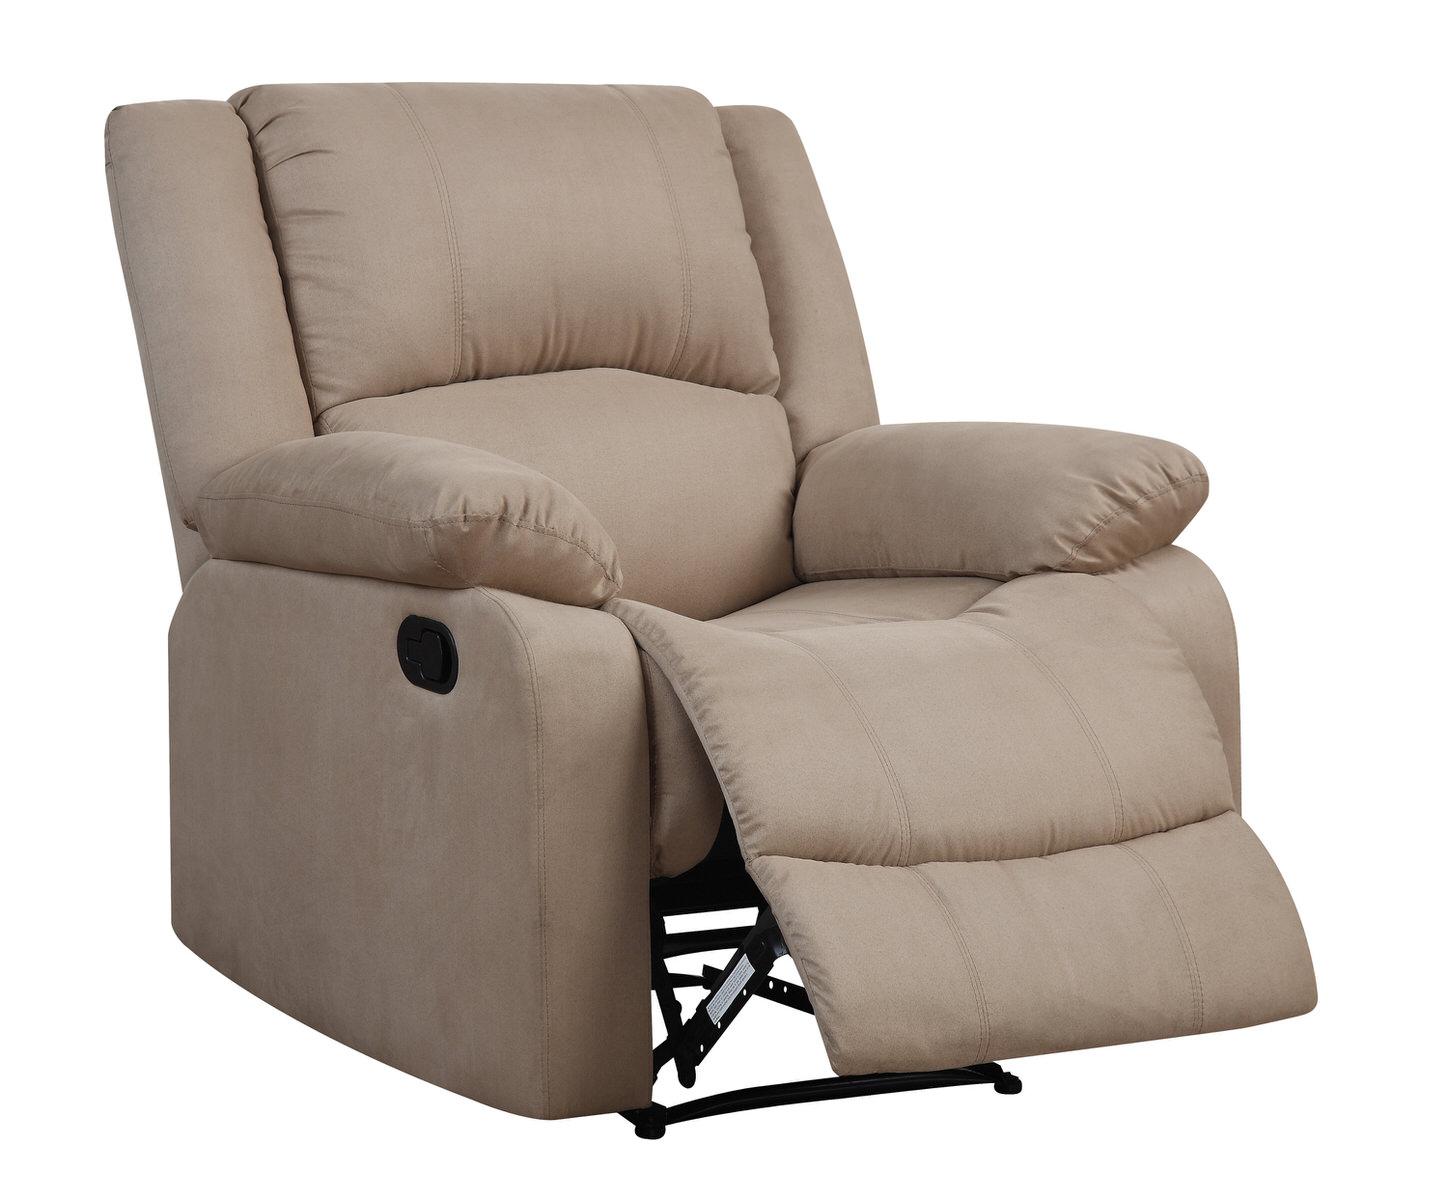 Recliner Chairs Ottawa Parker Reclining Convertible Chair Beige By Lifestyle